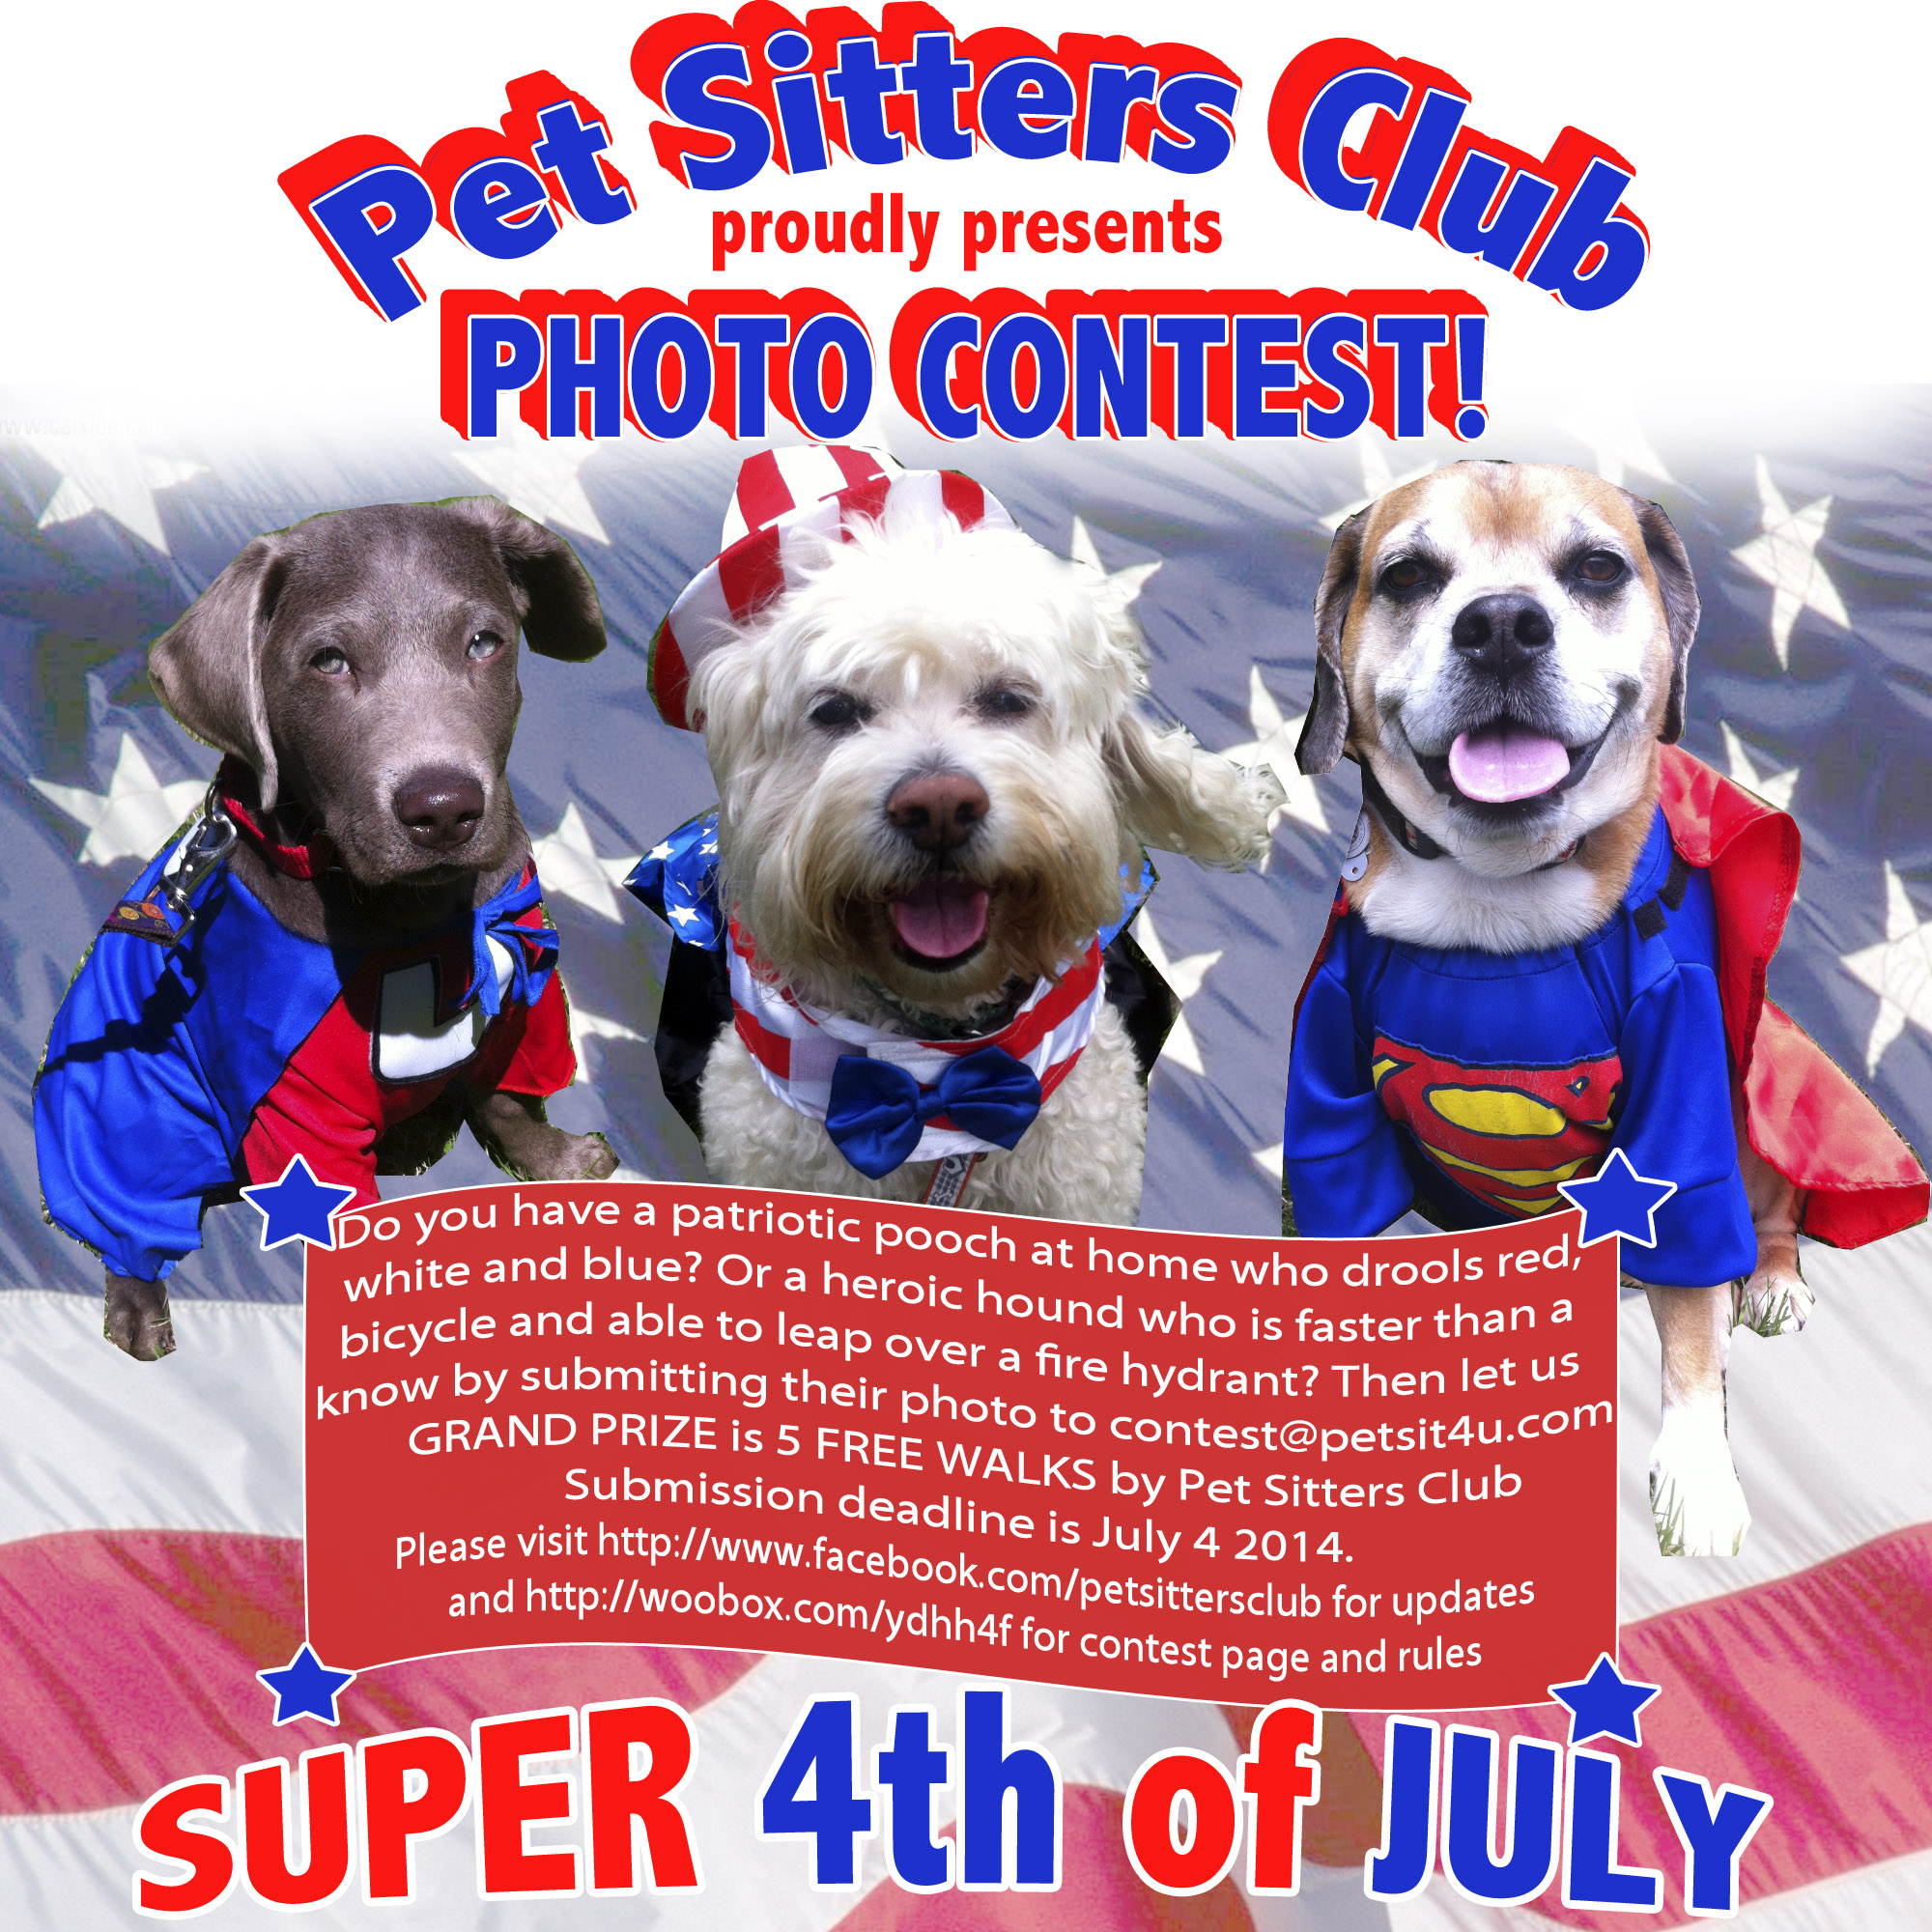 Do you have a patriotic pooch at home who drools red, white and blue? Or a heroic hound who is faster than a bicycle and able to leap over a fire hydrant? Then let us know by submitting their photo to contest@petsit4u.com GRAND PRIZE is 5 FREE WALKS by Pet Sitters Club Submission deadline is July 4 2014.